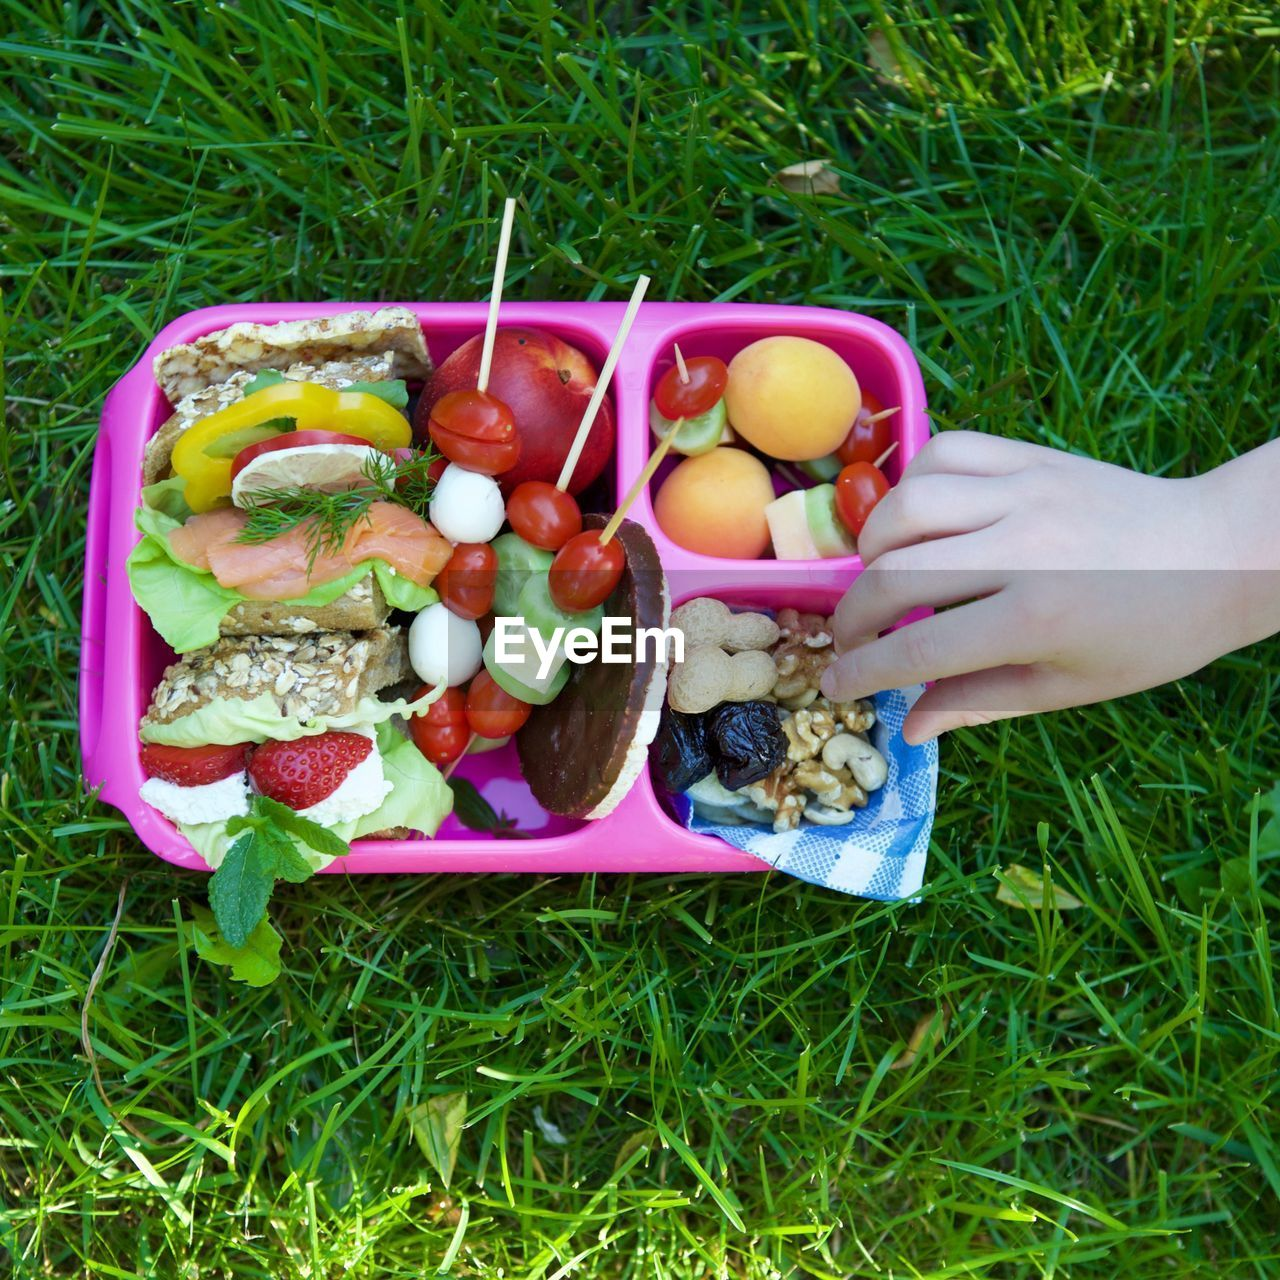 food, food and drink, human hand, hand, human body part, freshness, grass, one person, healthy eating, real people, high angle view, wellbeing, fruit, holding, vegetable, day, unrecognizable person, plant, green color, body part, finger, outdoors, lunch box